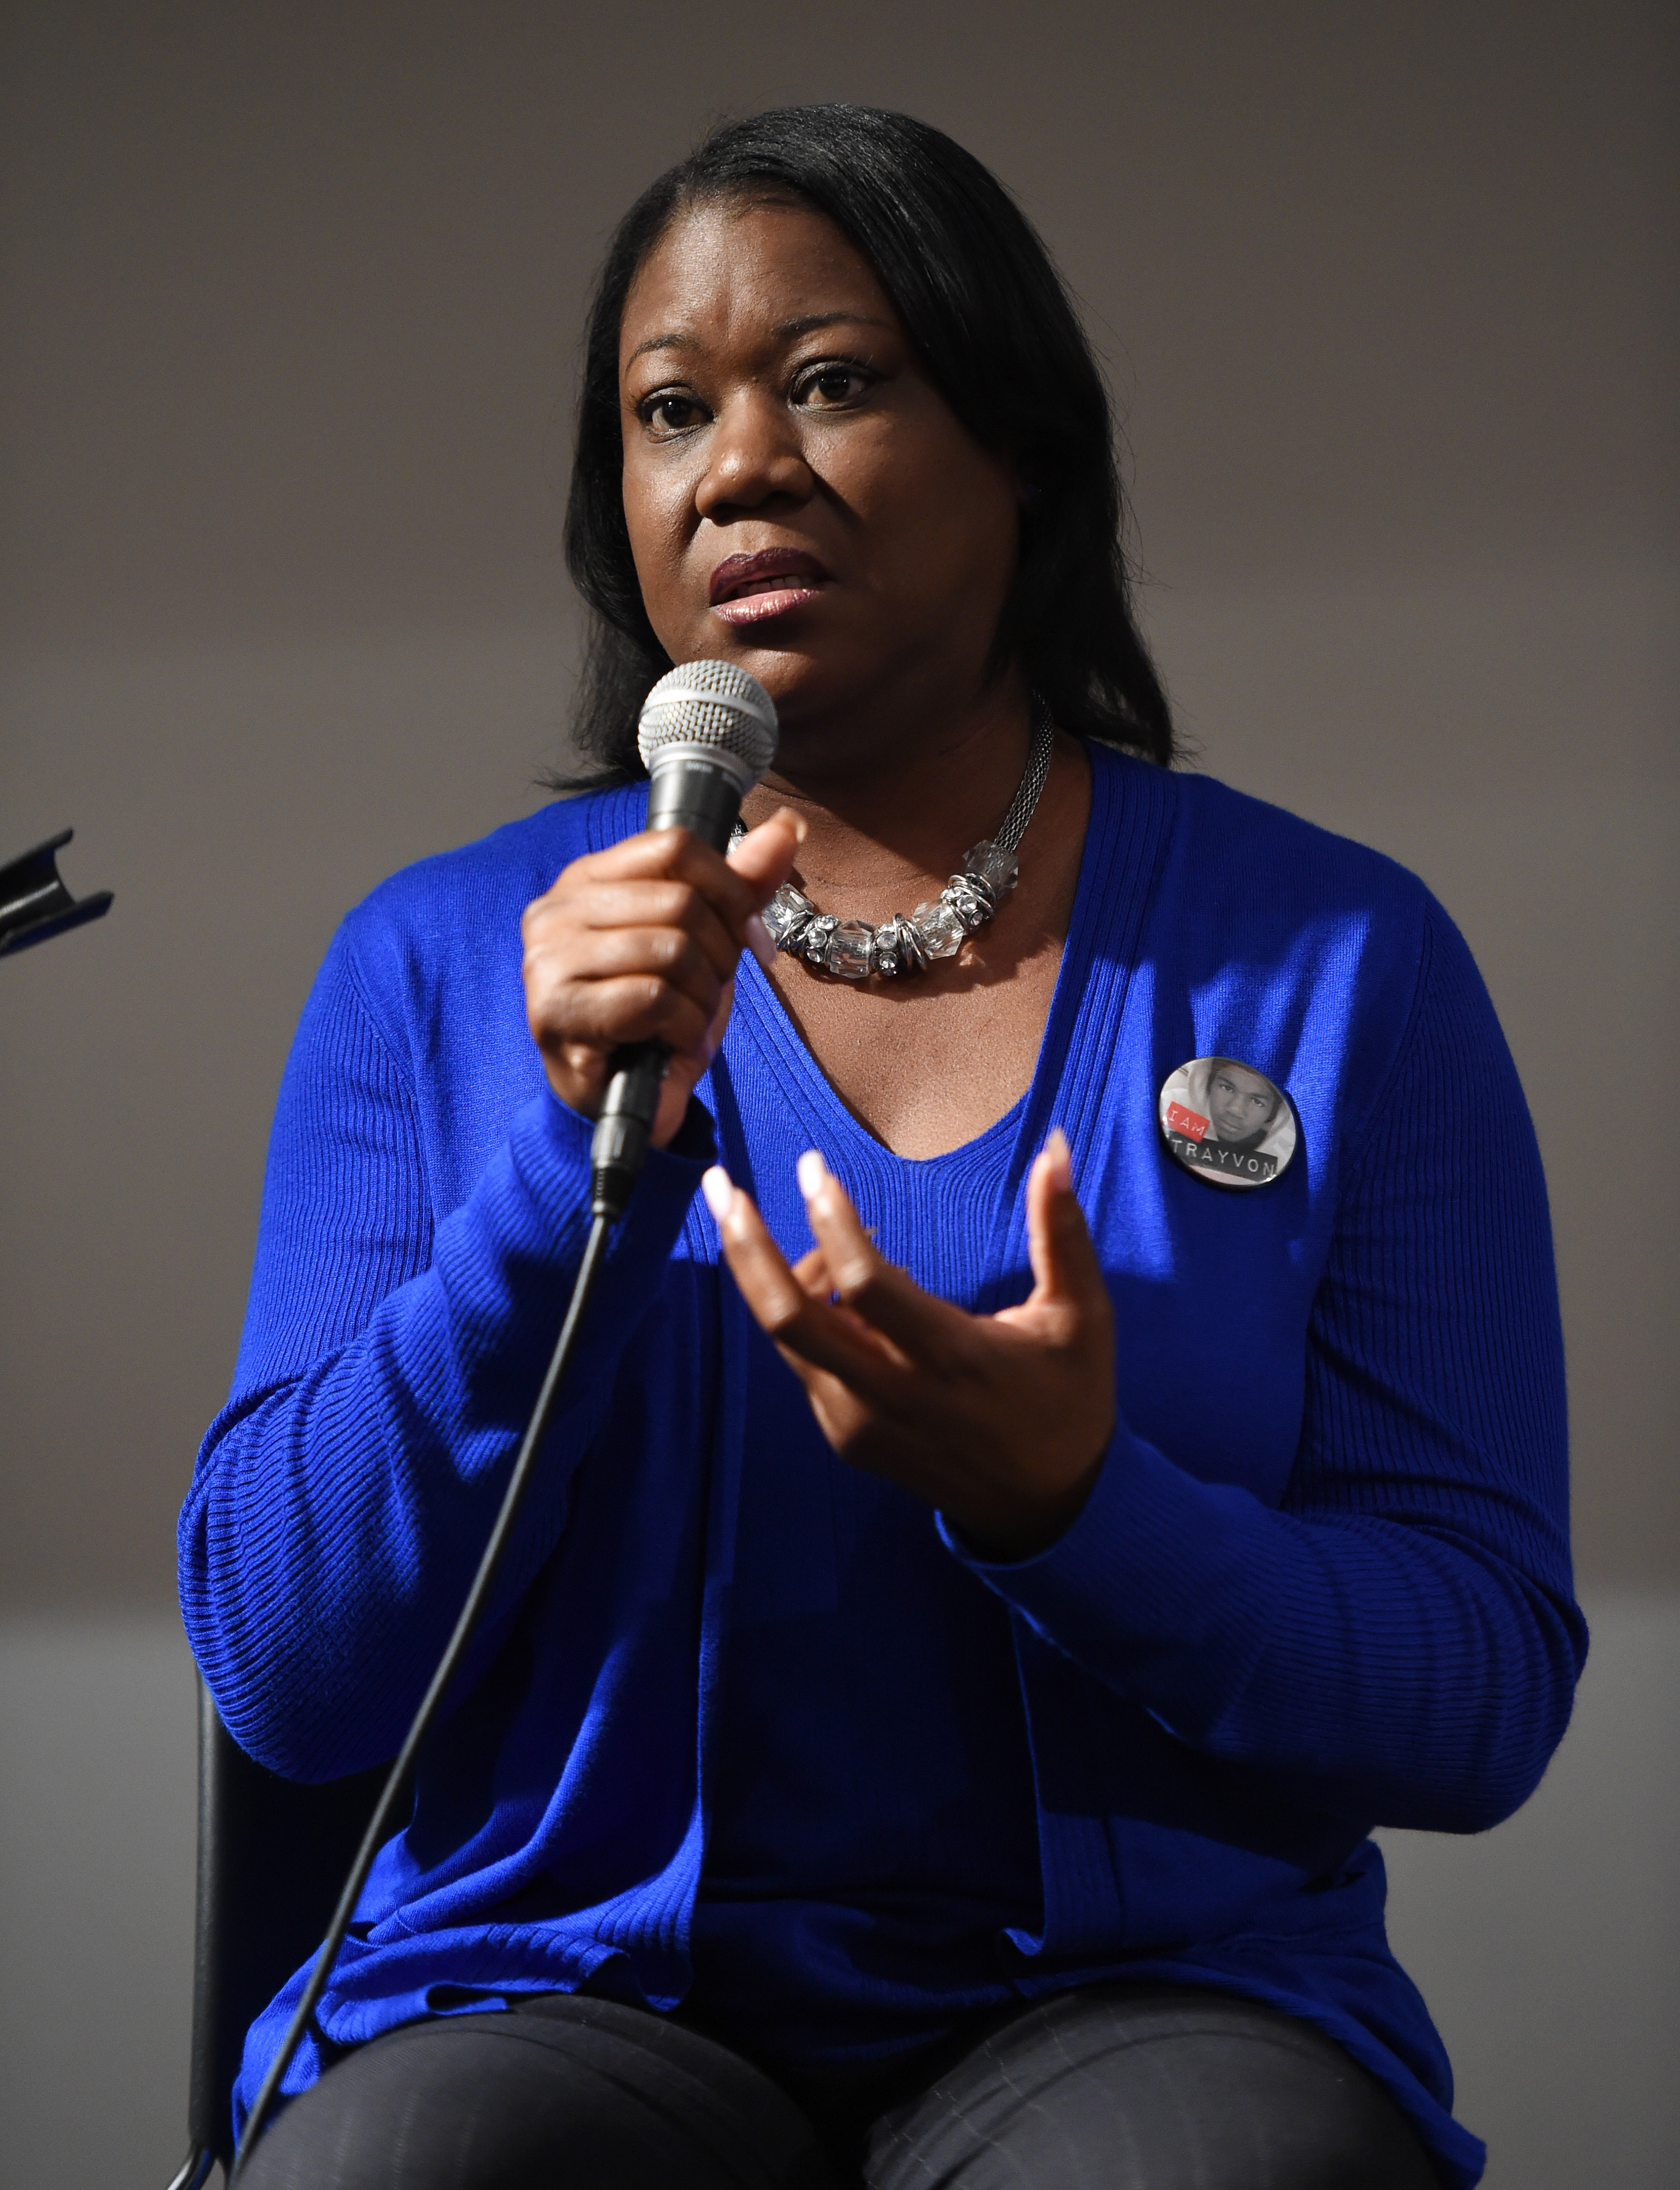 Activist Sybrina Fulton participates in a panel conversation at the Manifest: Justice pop-up art space on May 6, 2015 in Los Angeles.